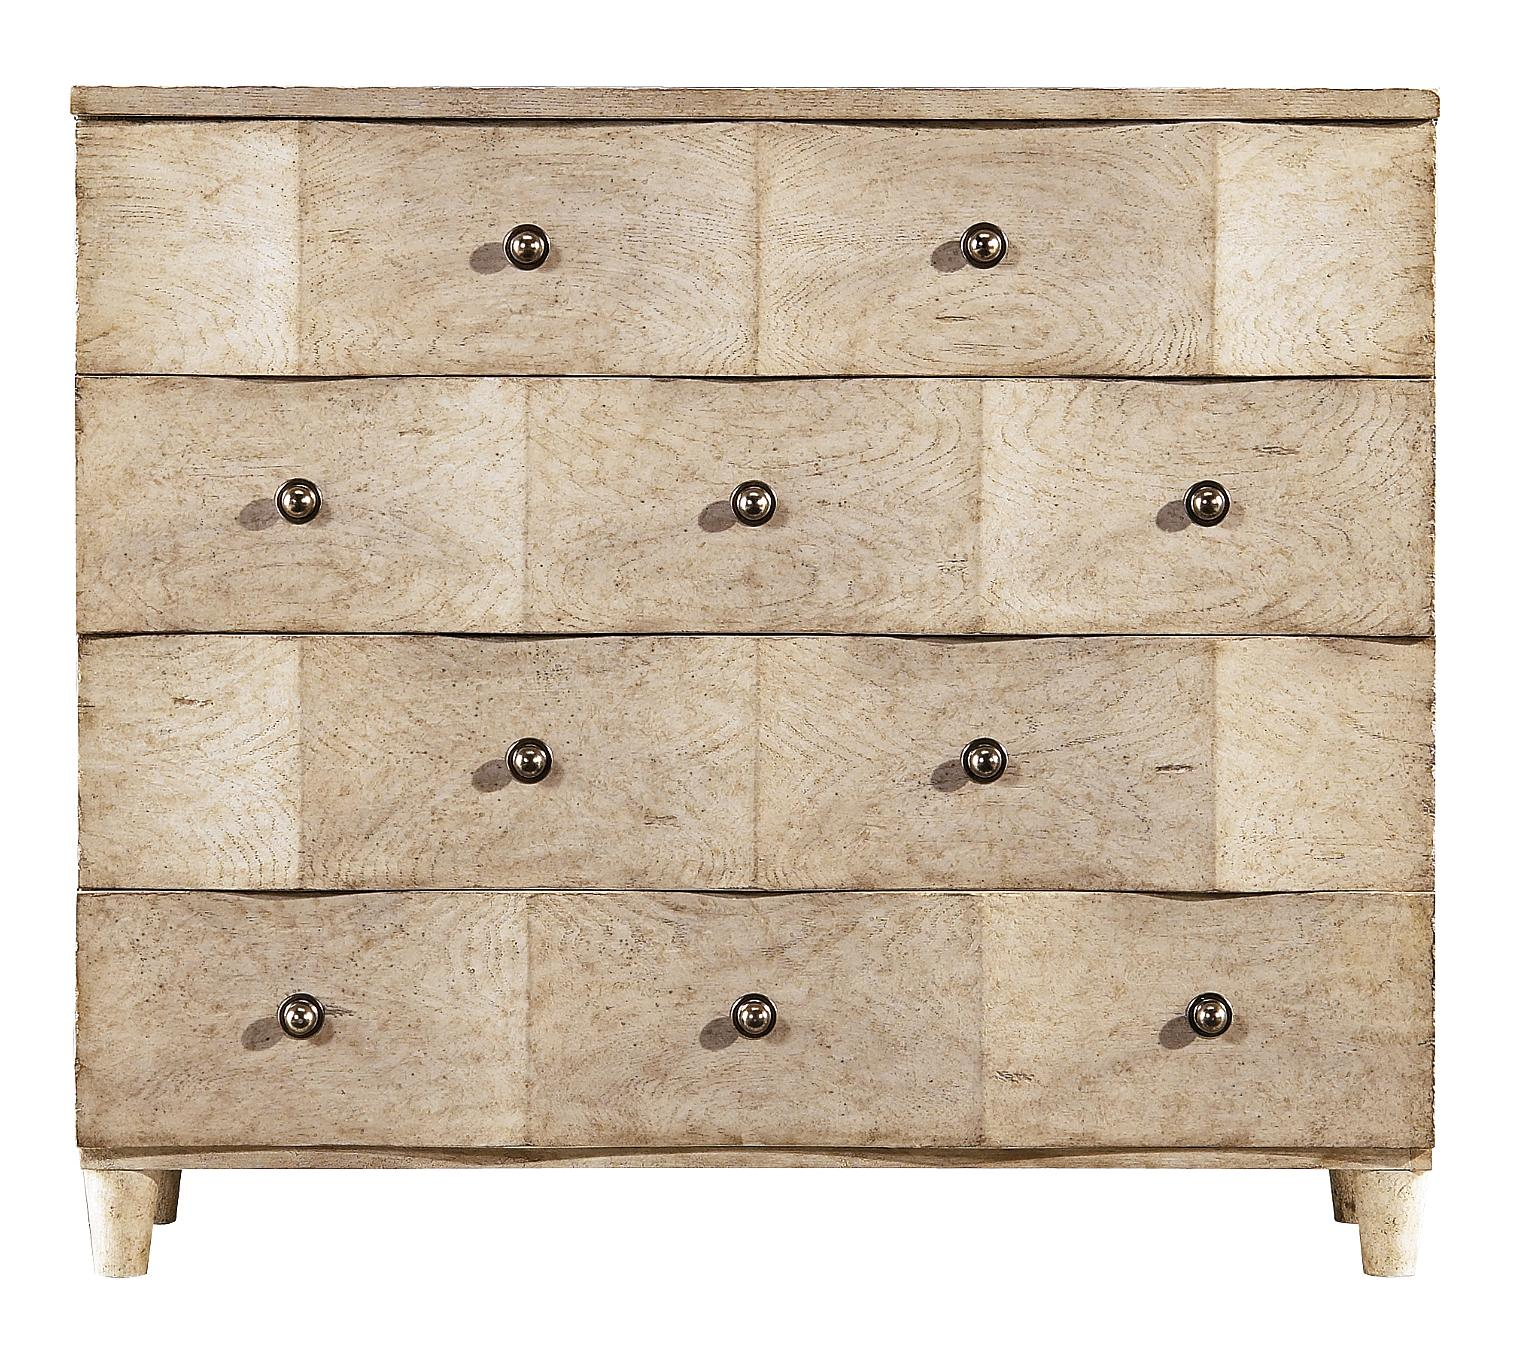 Stanley Furniture Coastal Living Resort Ocean Breaker Dresser - Item Number: 062-23-02